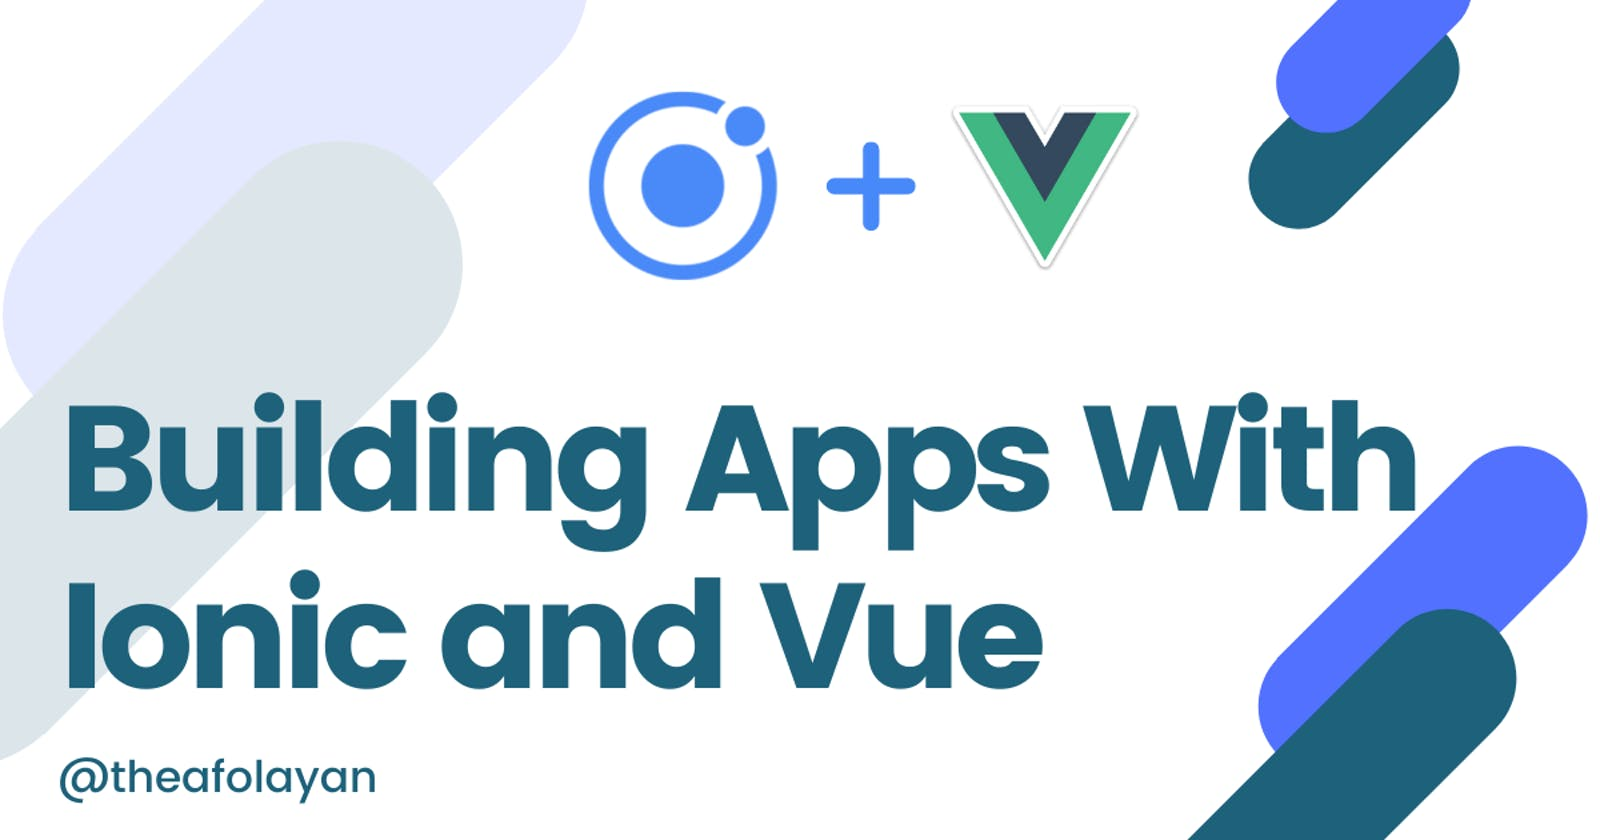 Building Mobile Apps With Ionic + Vue